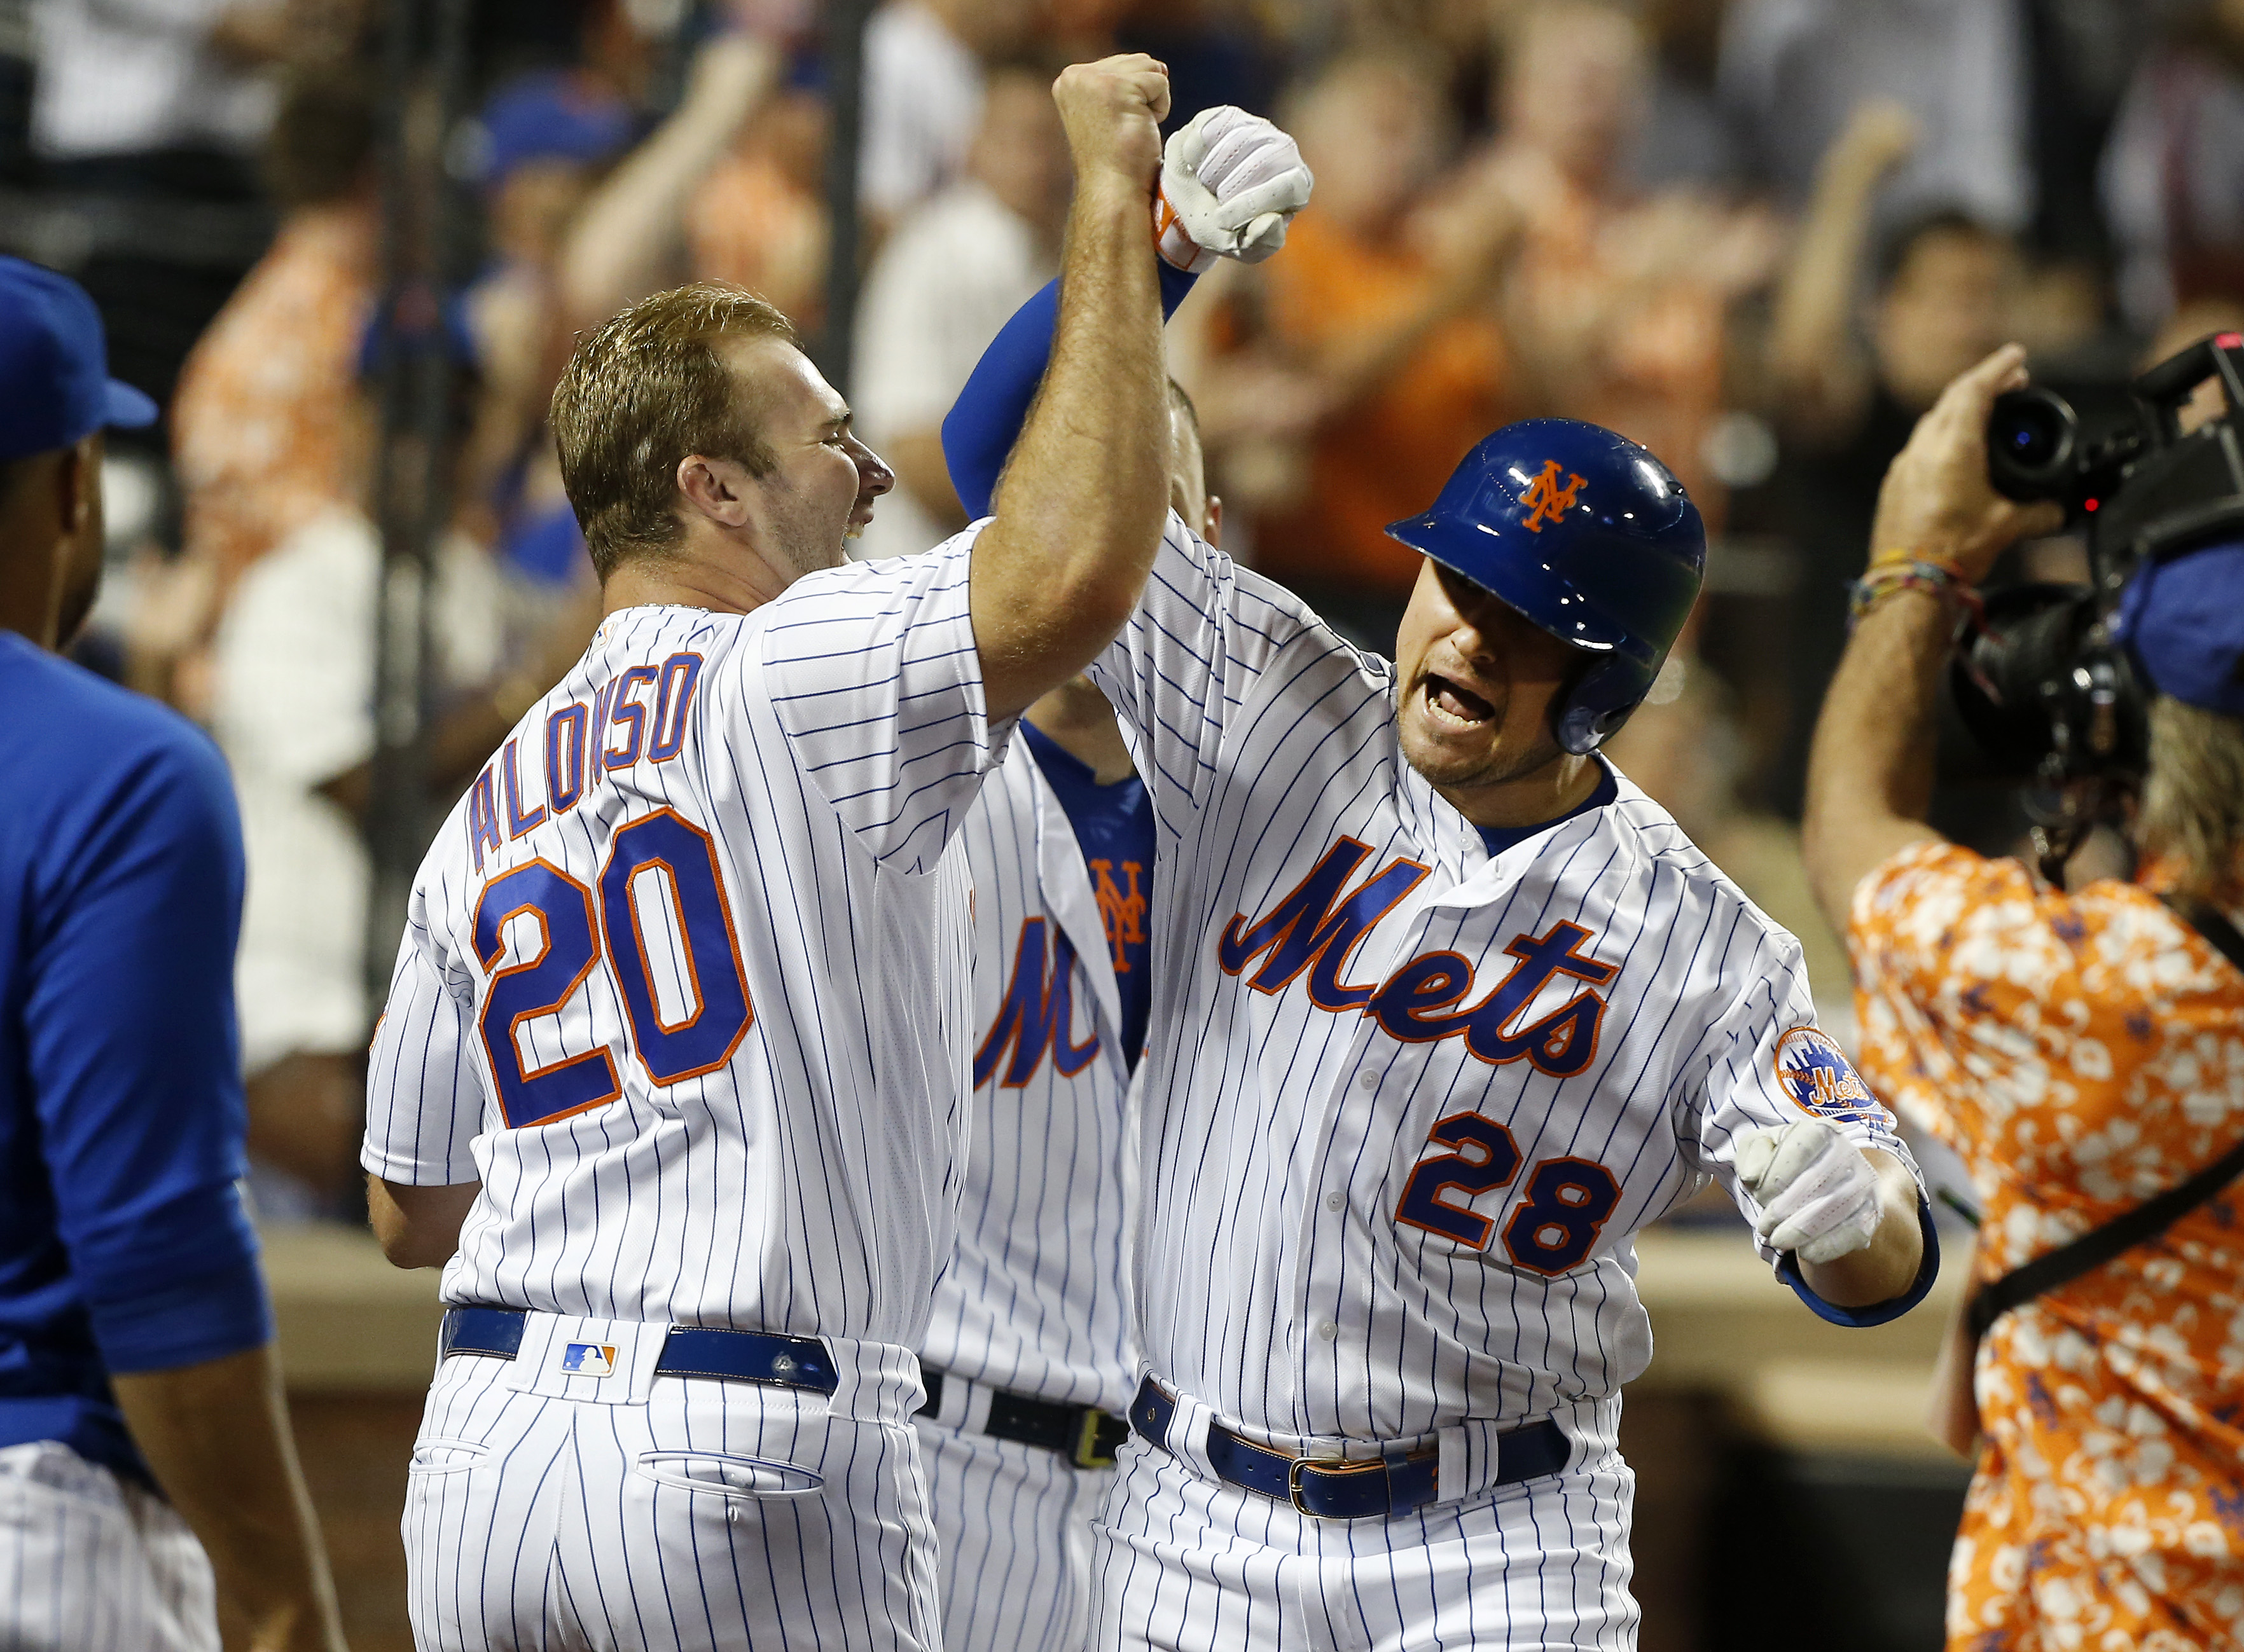 How the New York Mets became relevant again